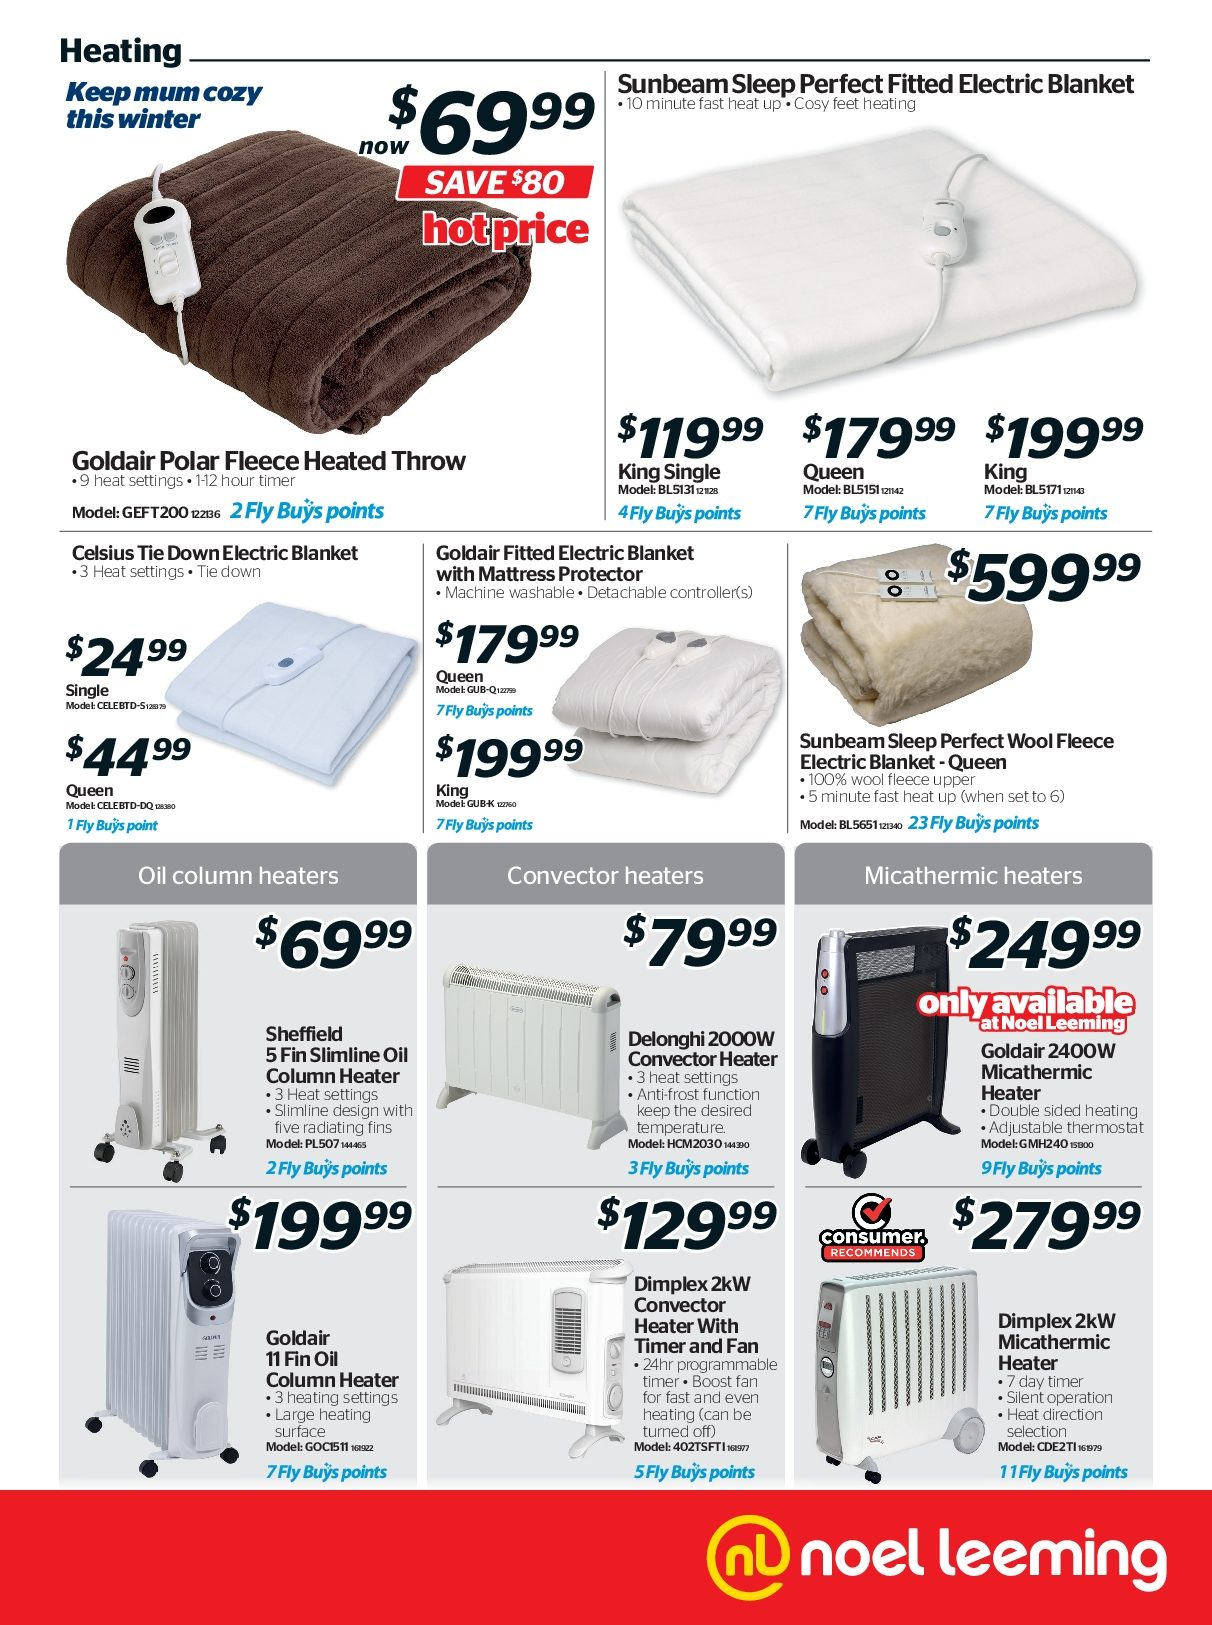 Noel Leeming mailer - 02.05.2018 - 15.05.2018 - Sales products - blanket, controller, delonghi, mattress, throw, tie, timer, heater, electric blanket, wool, mattress protector, oil. Page 5.